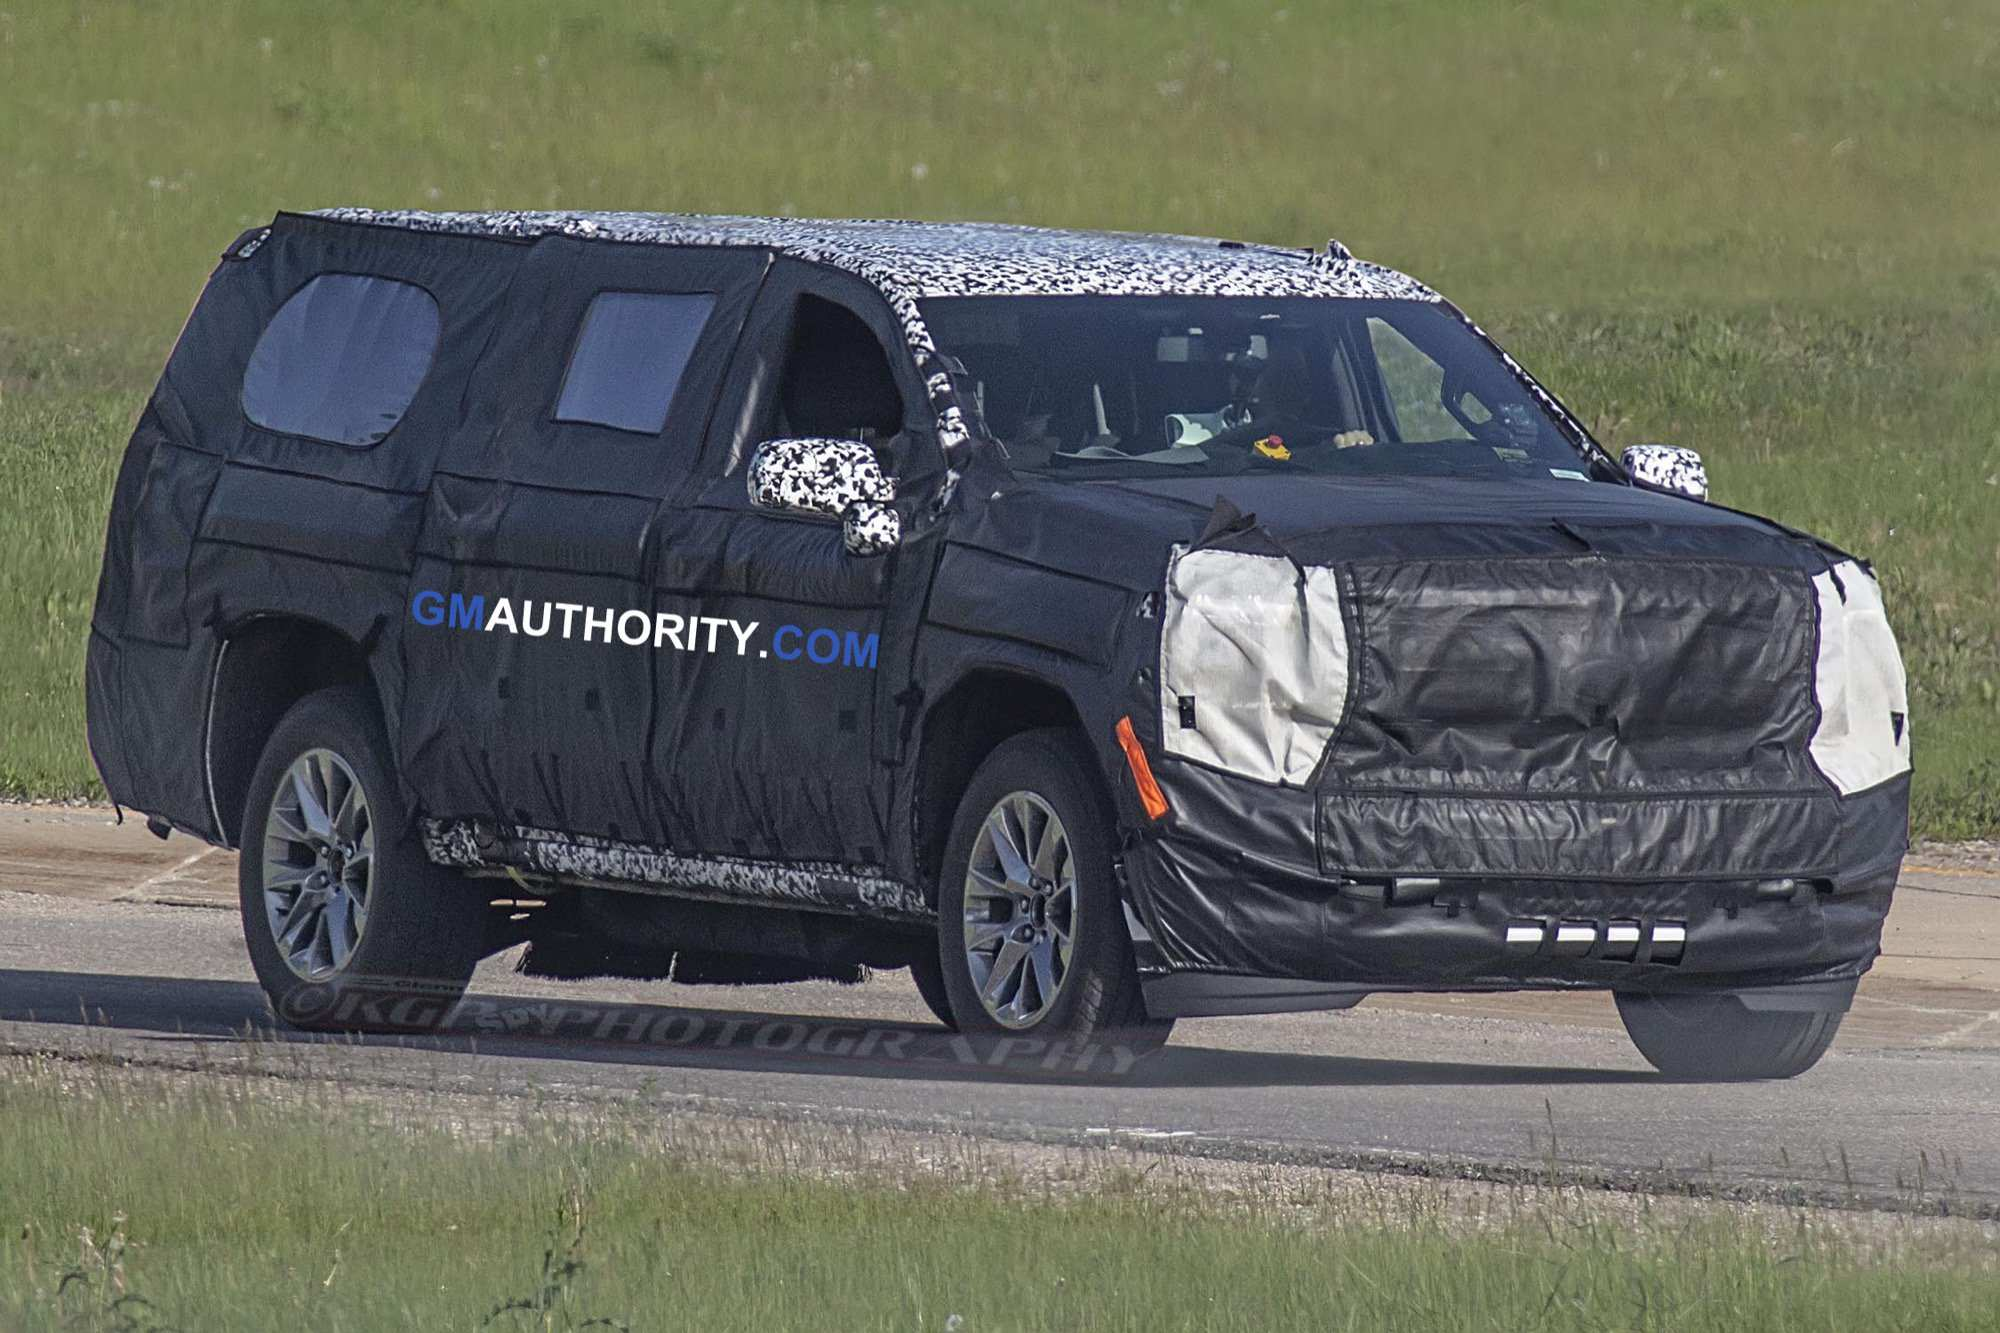 60 All New 2020 Chevy Suburban Z71 Model for 2020 Chevy Suburban Z71